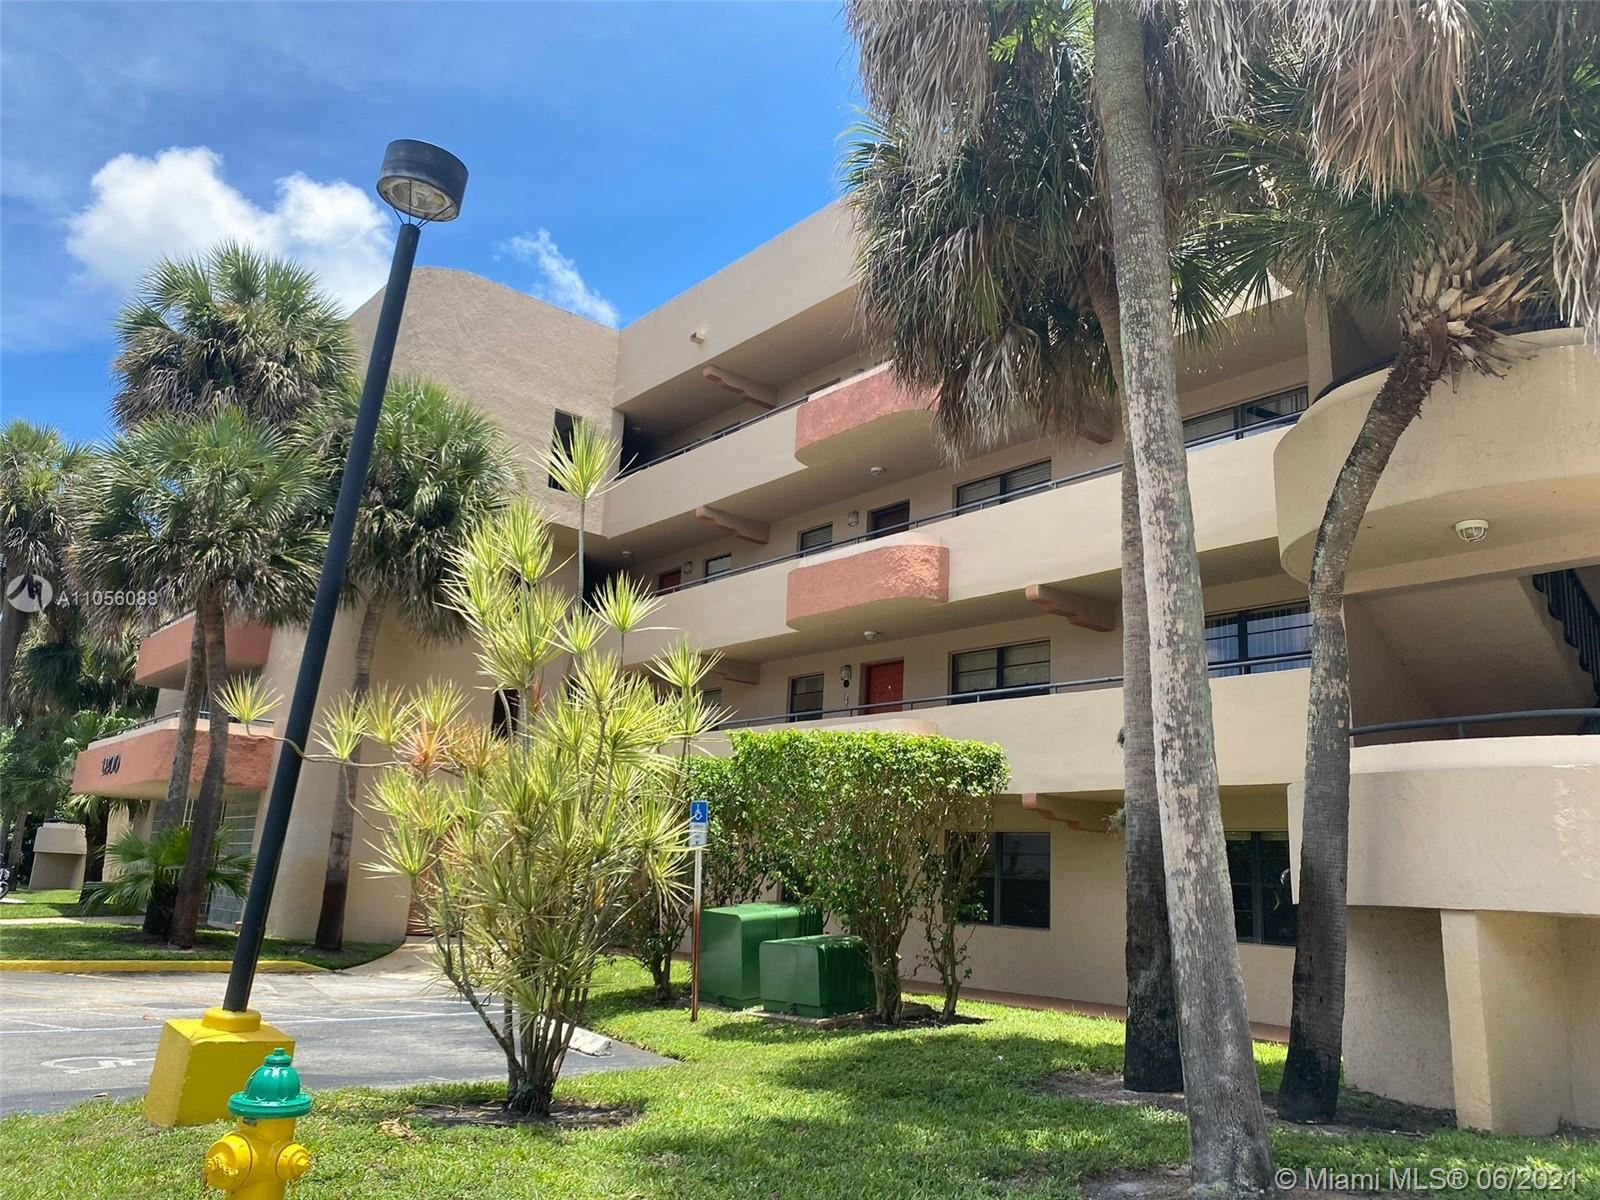 1200 NW 80th Ave #206A, Margate, FL 33063 - #: A11056088